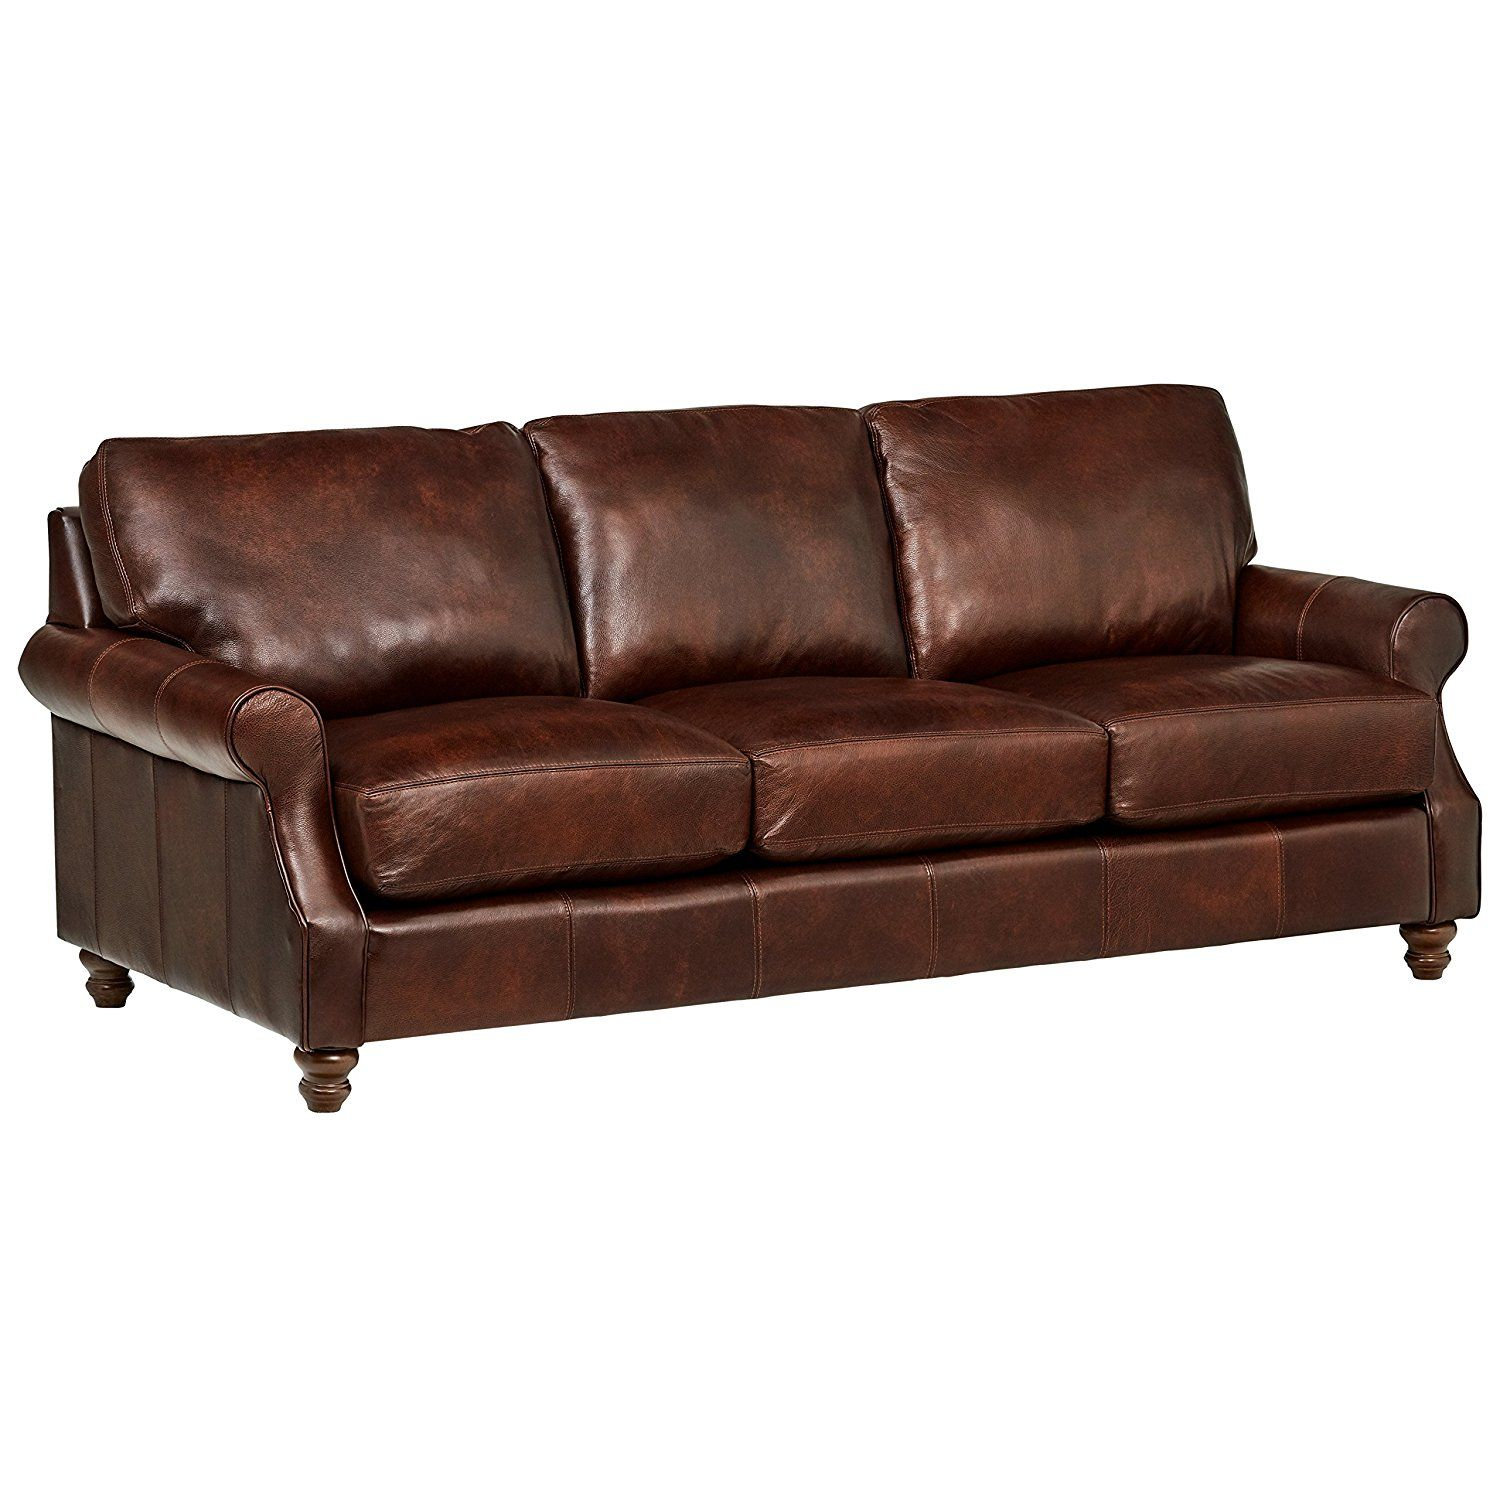 1 Stone U0026 Beam Charles Classic Oversized Leather Sofa